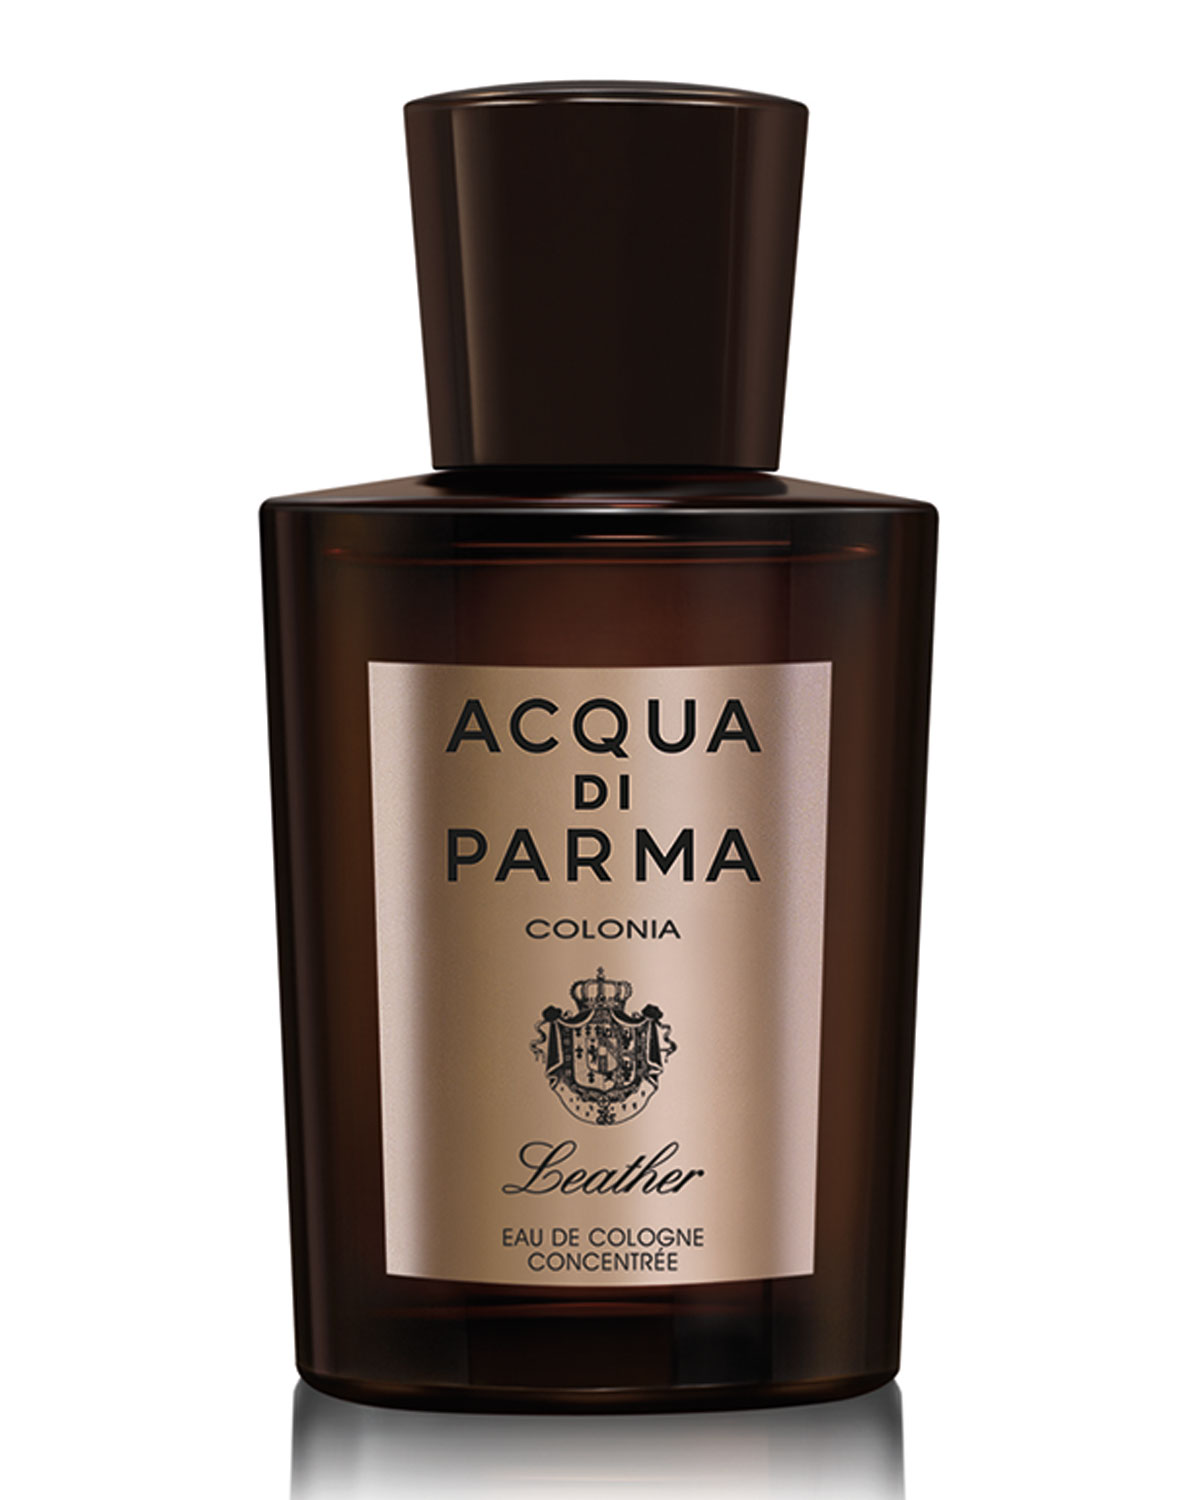 Acqua Di Parma COLONIA LEATHER EAU DE COLOGNE CONCENTRÉE, 3.4 OZ./ 100 ML